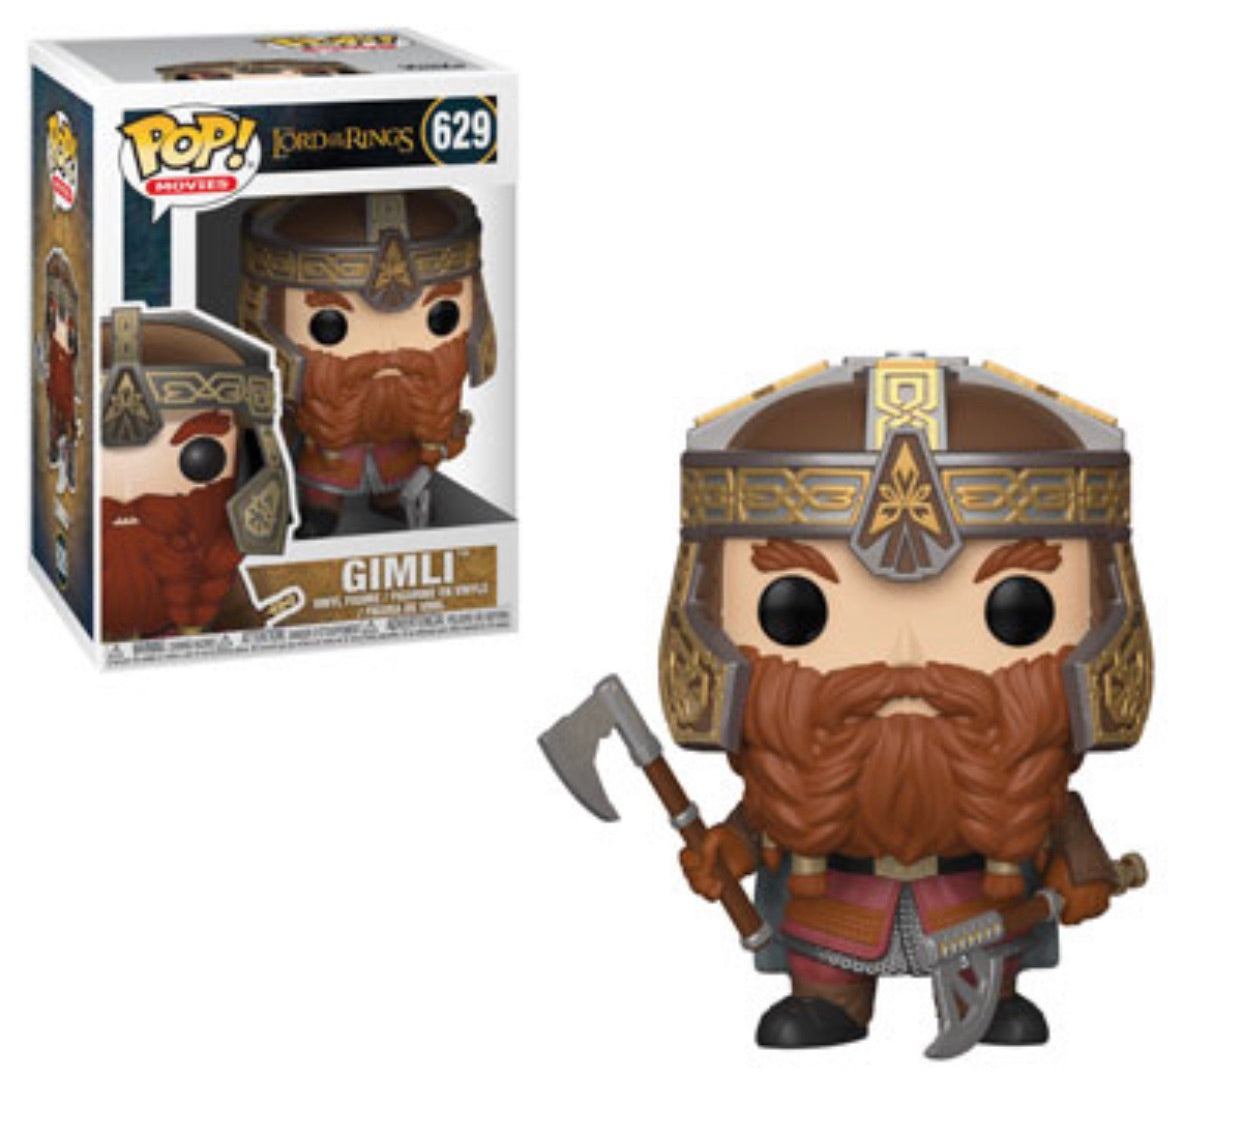 (Preorder)Pop! Movies: Lord of the Rings Gimli